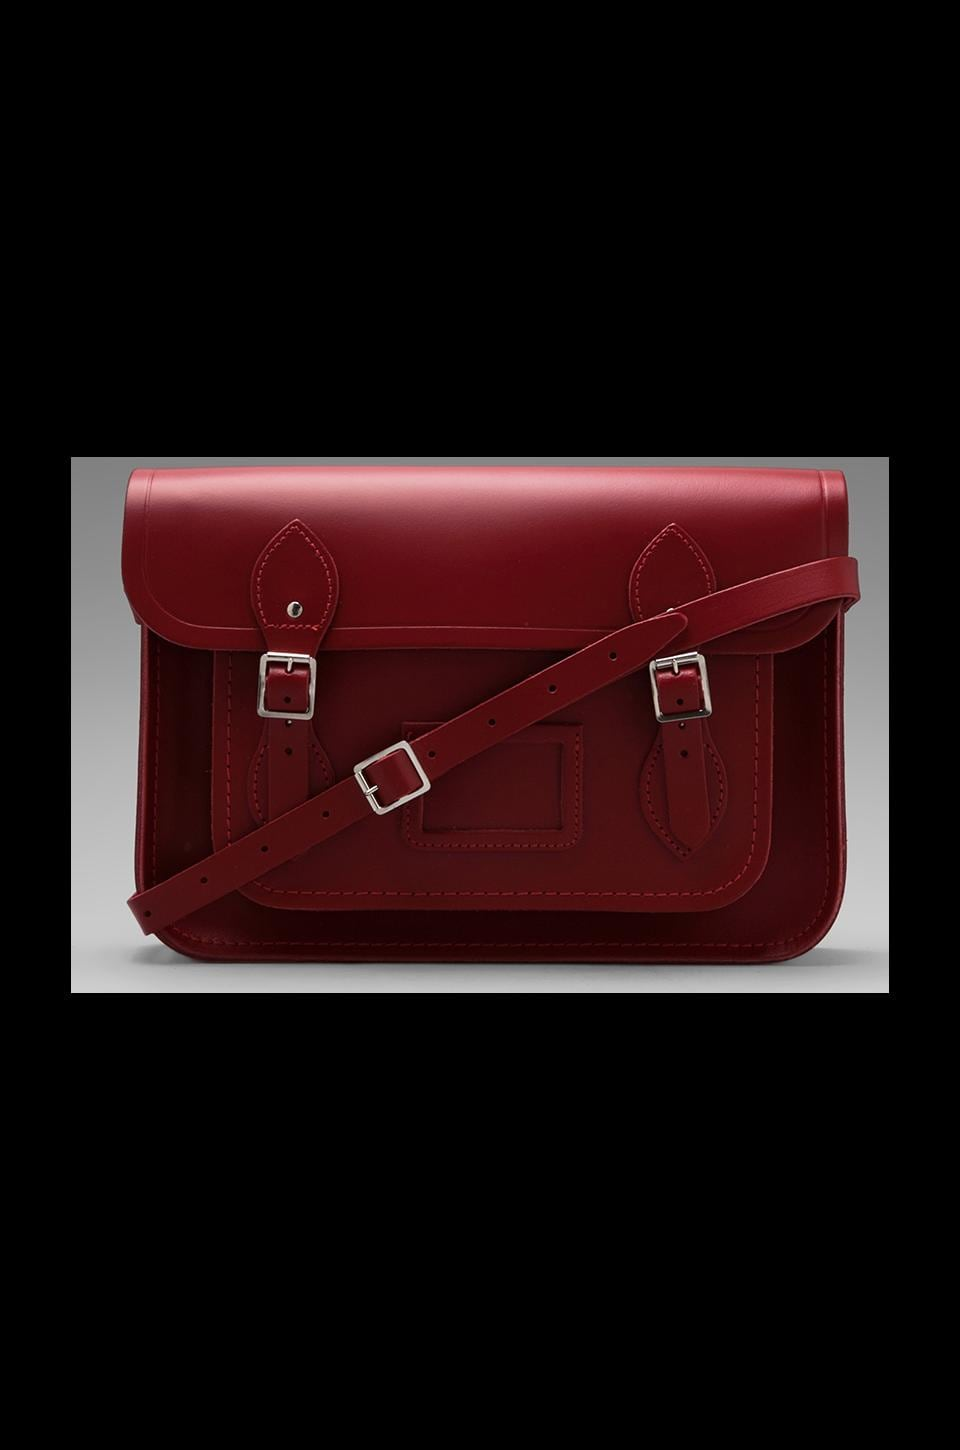 The Cambridge Satchel Company Core Collection 13'' Satchel in Red